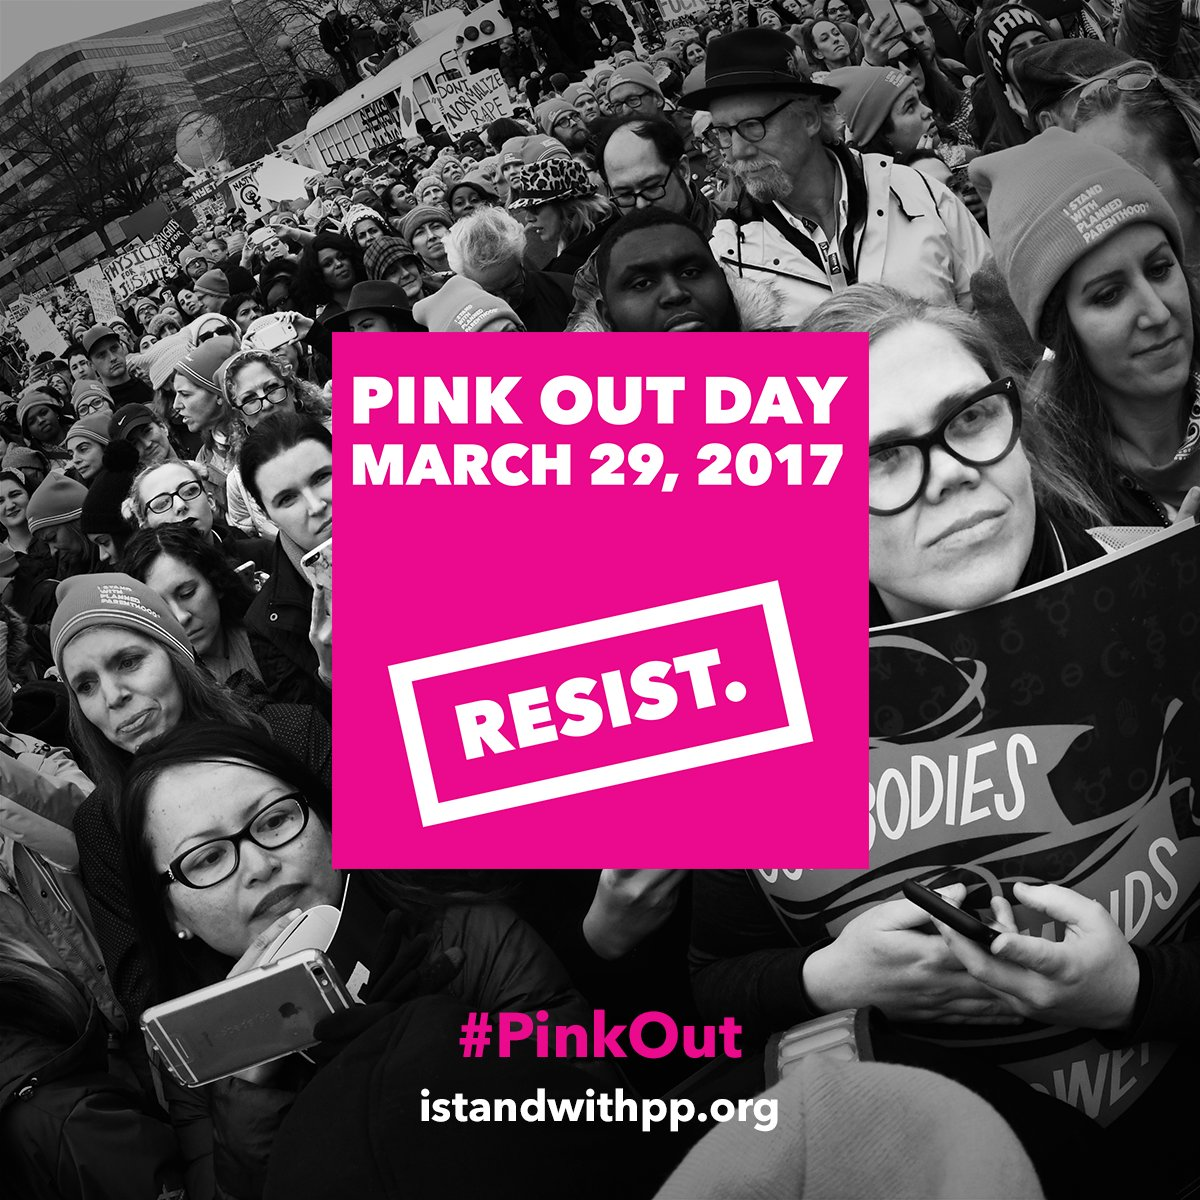 We won this fight, but we can't let up. Stop attacks on our health, rights & communities→  https://t.co/pU1TaTkMIa#PinkOut